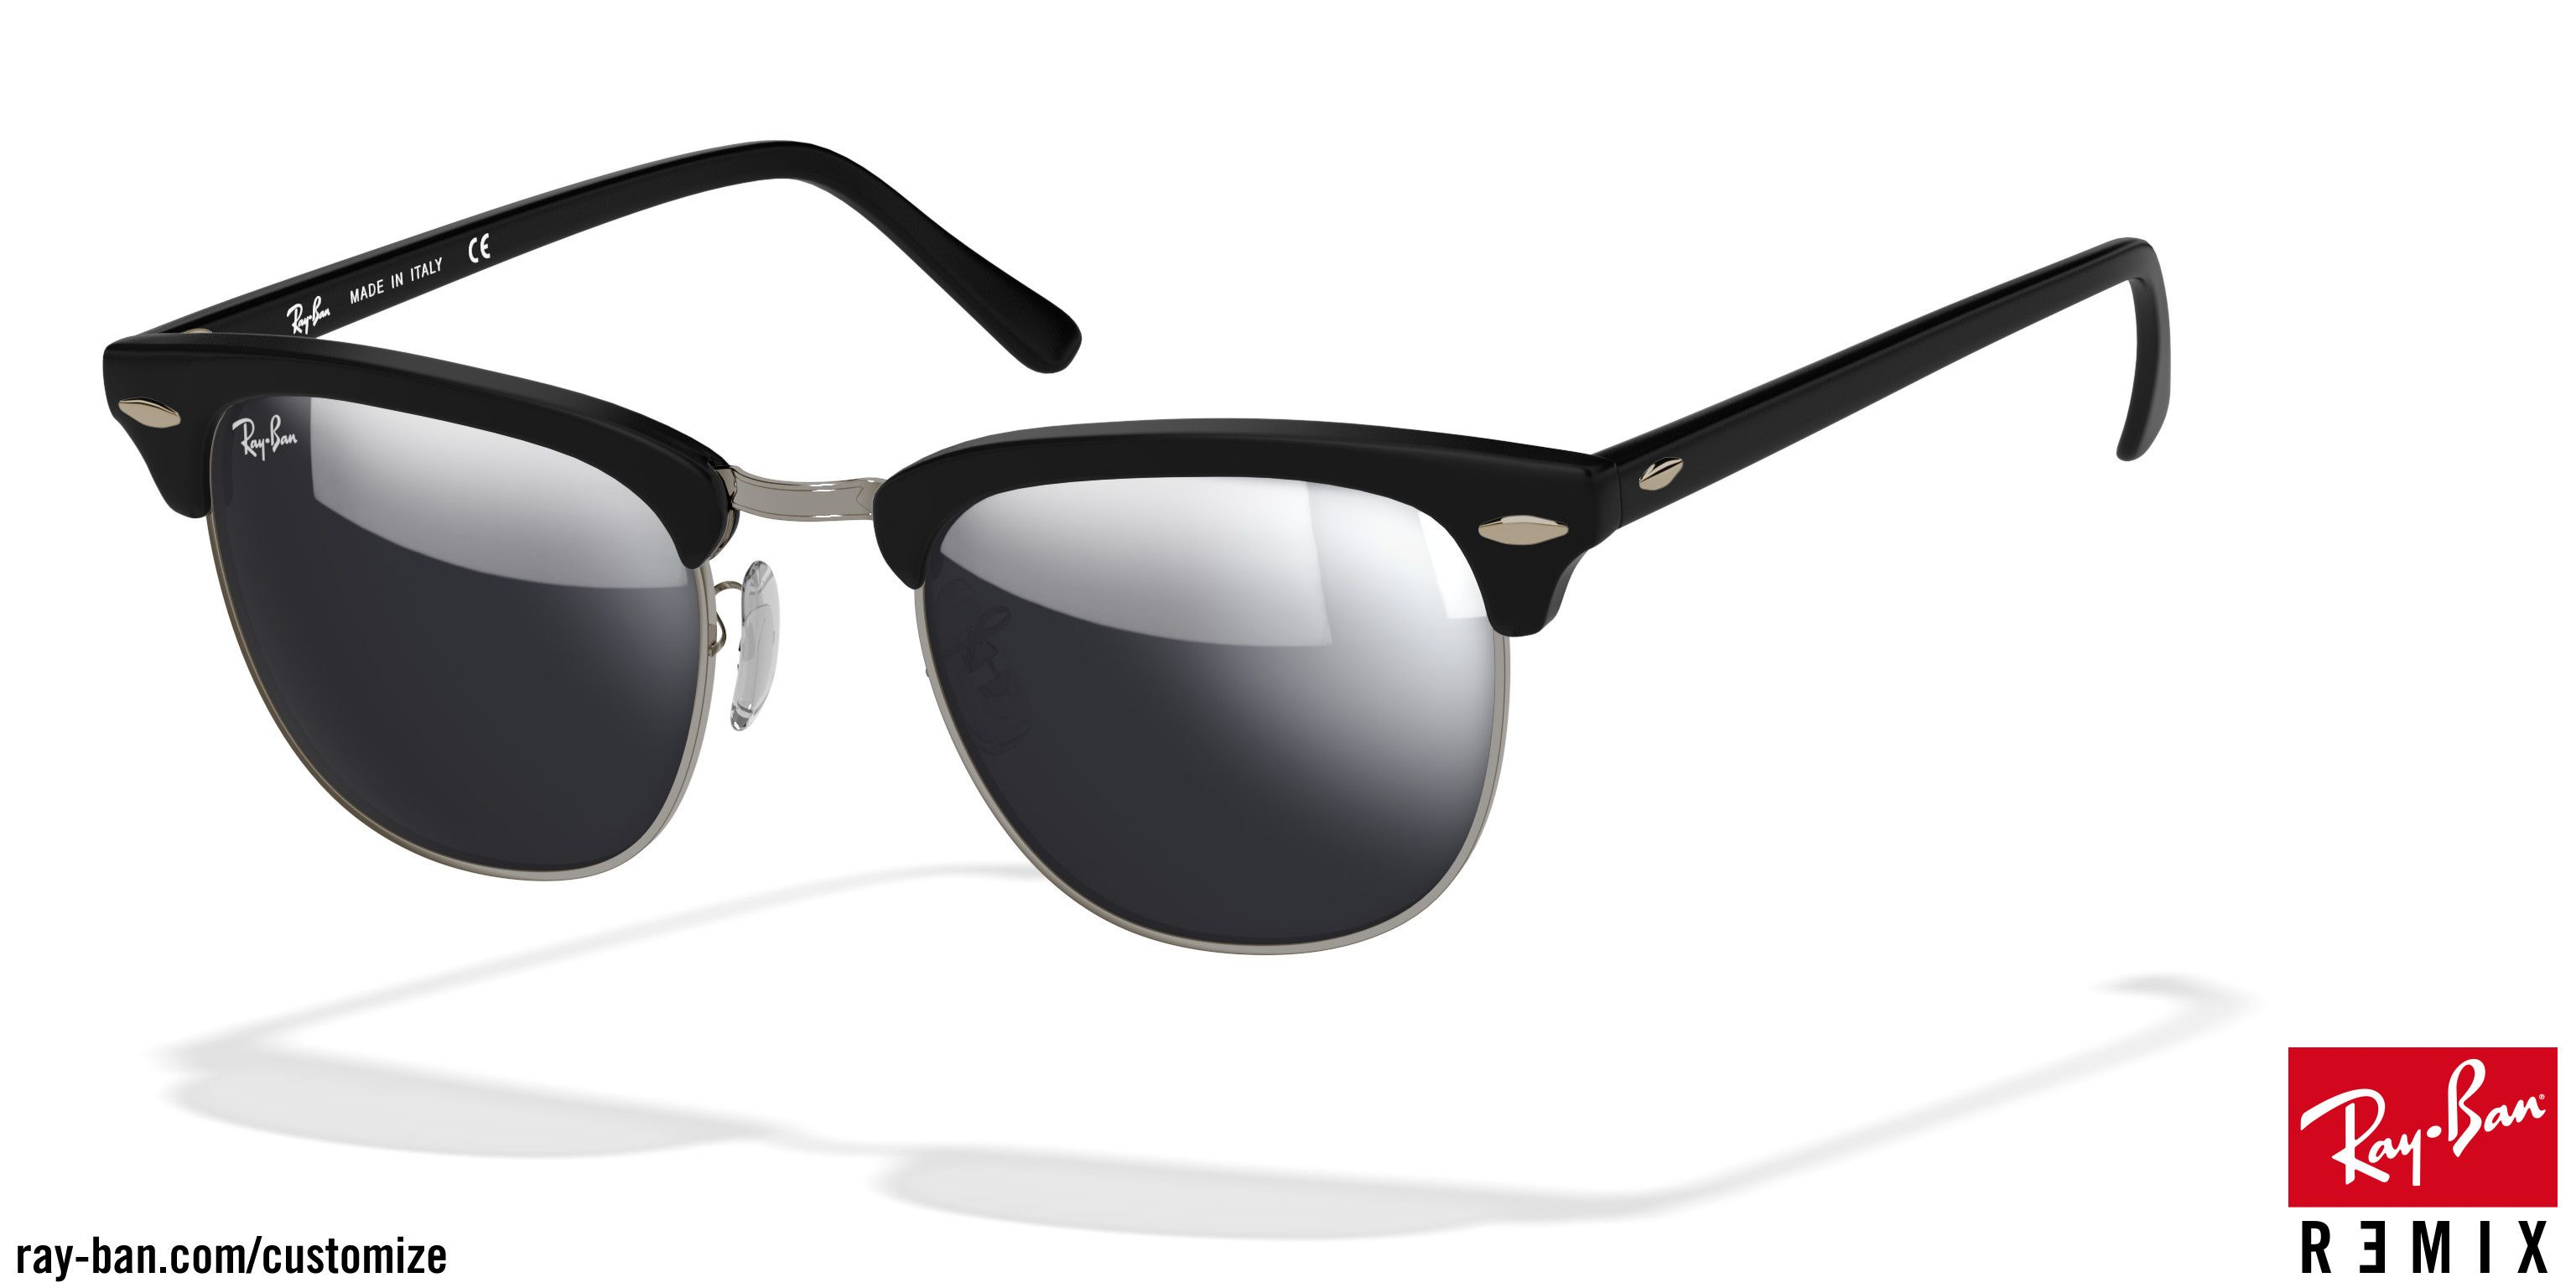 ray ban clubmaster sunglasses silver  custom ray ban clubmaster classic rb3016 with matte black frame, gunmetal hardware and mirrored silver flash lenses. ray